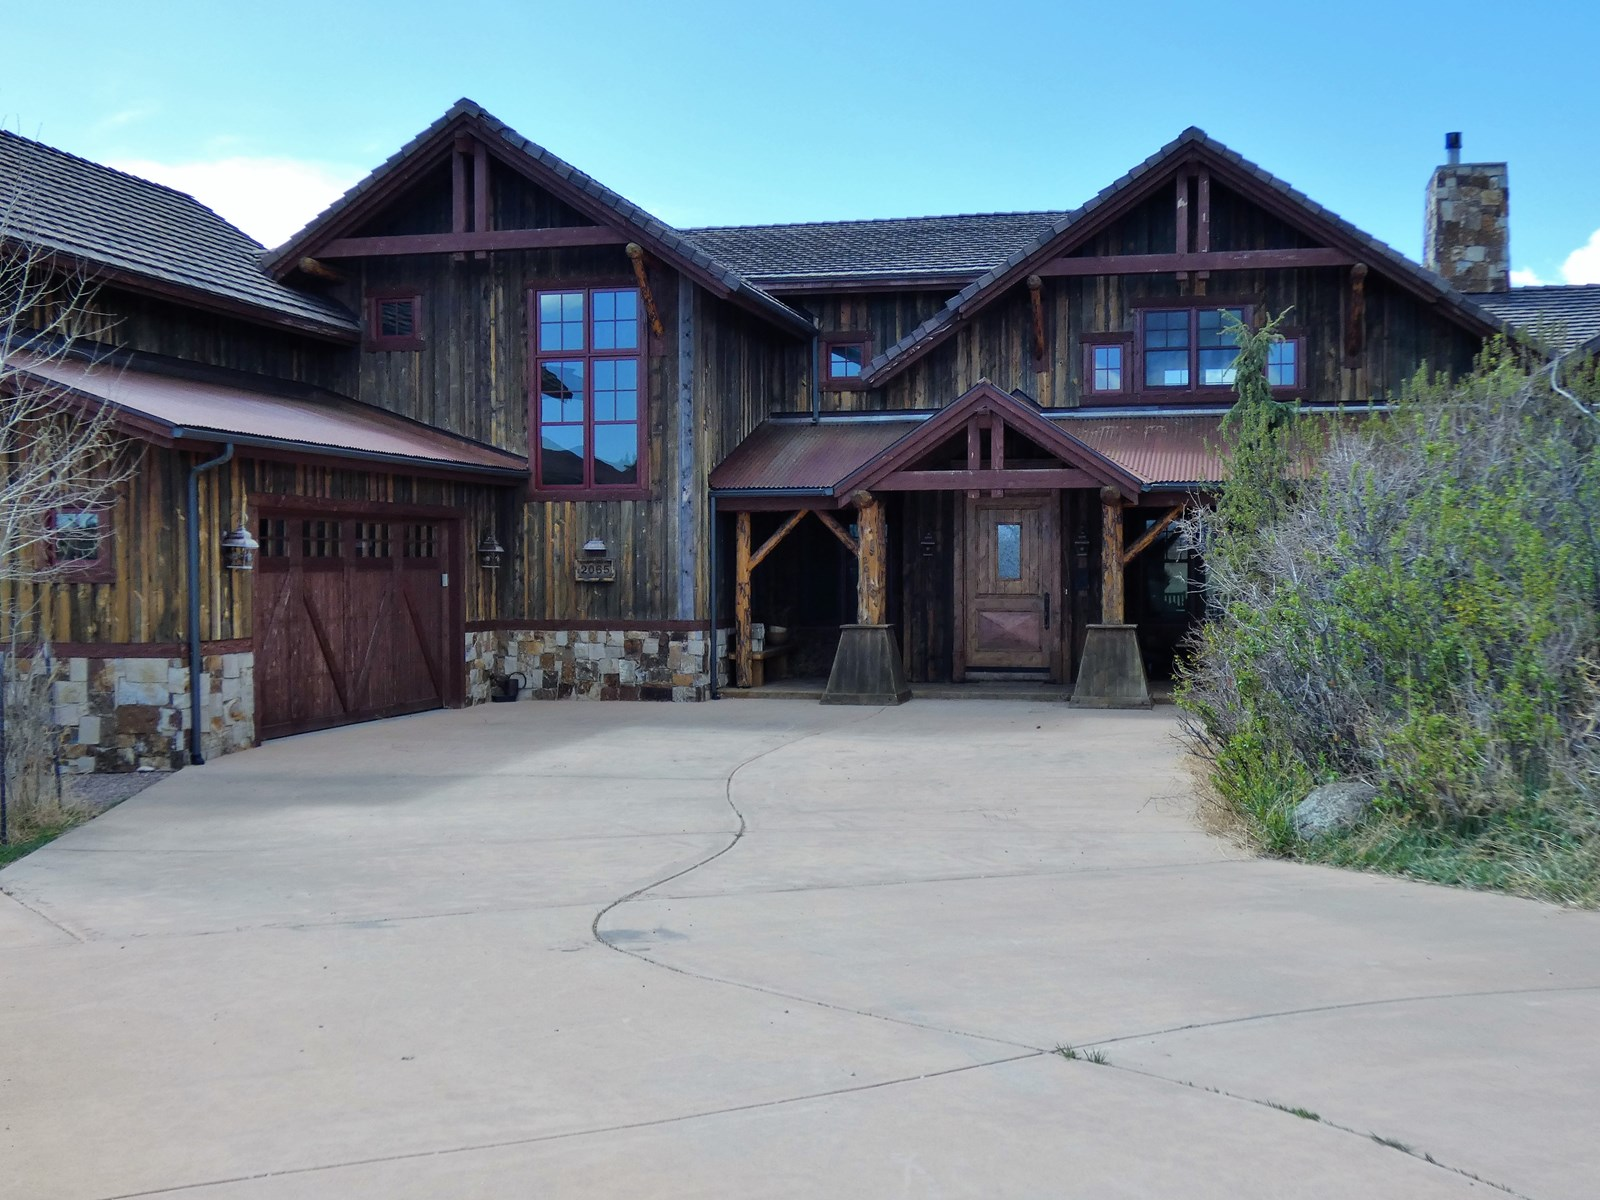 Rustic Mountain Home For Sale-2065 Cowboy Way, Cotopaxi, CO